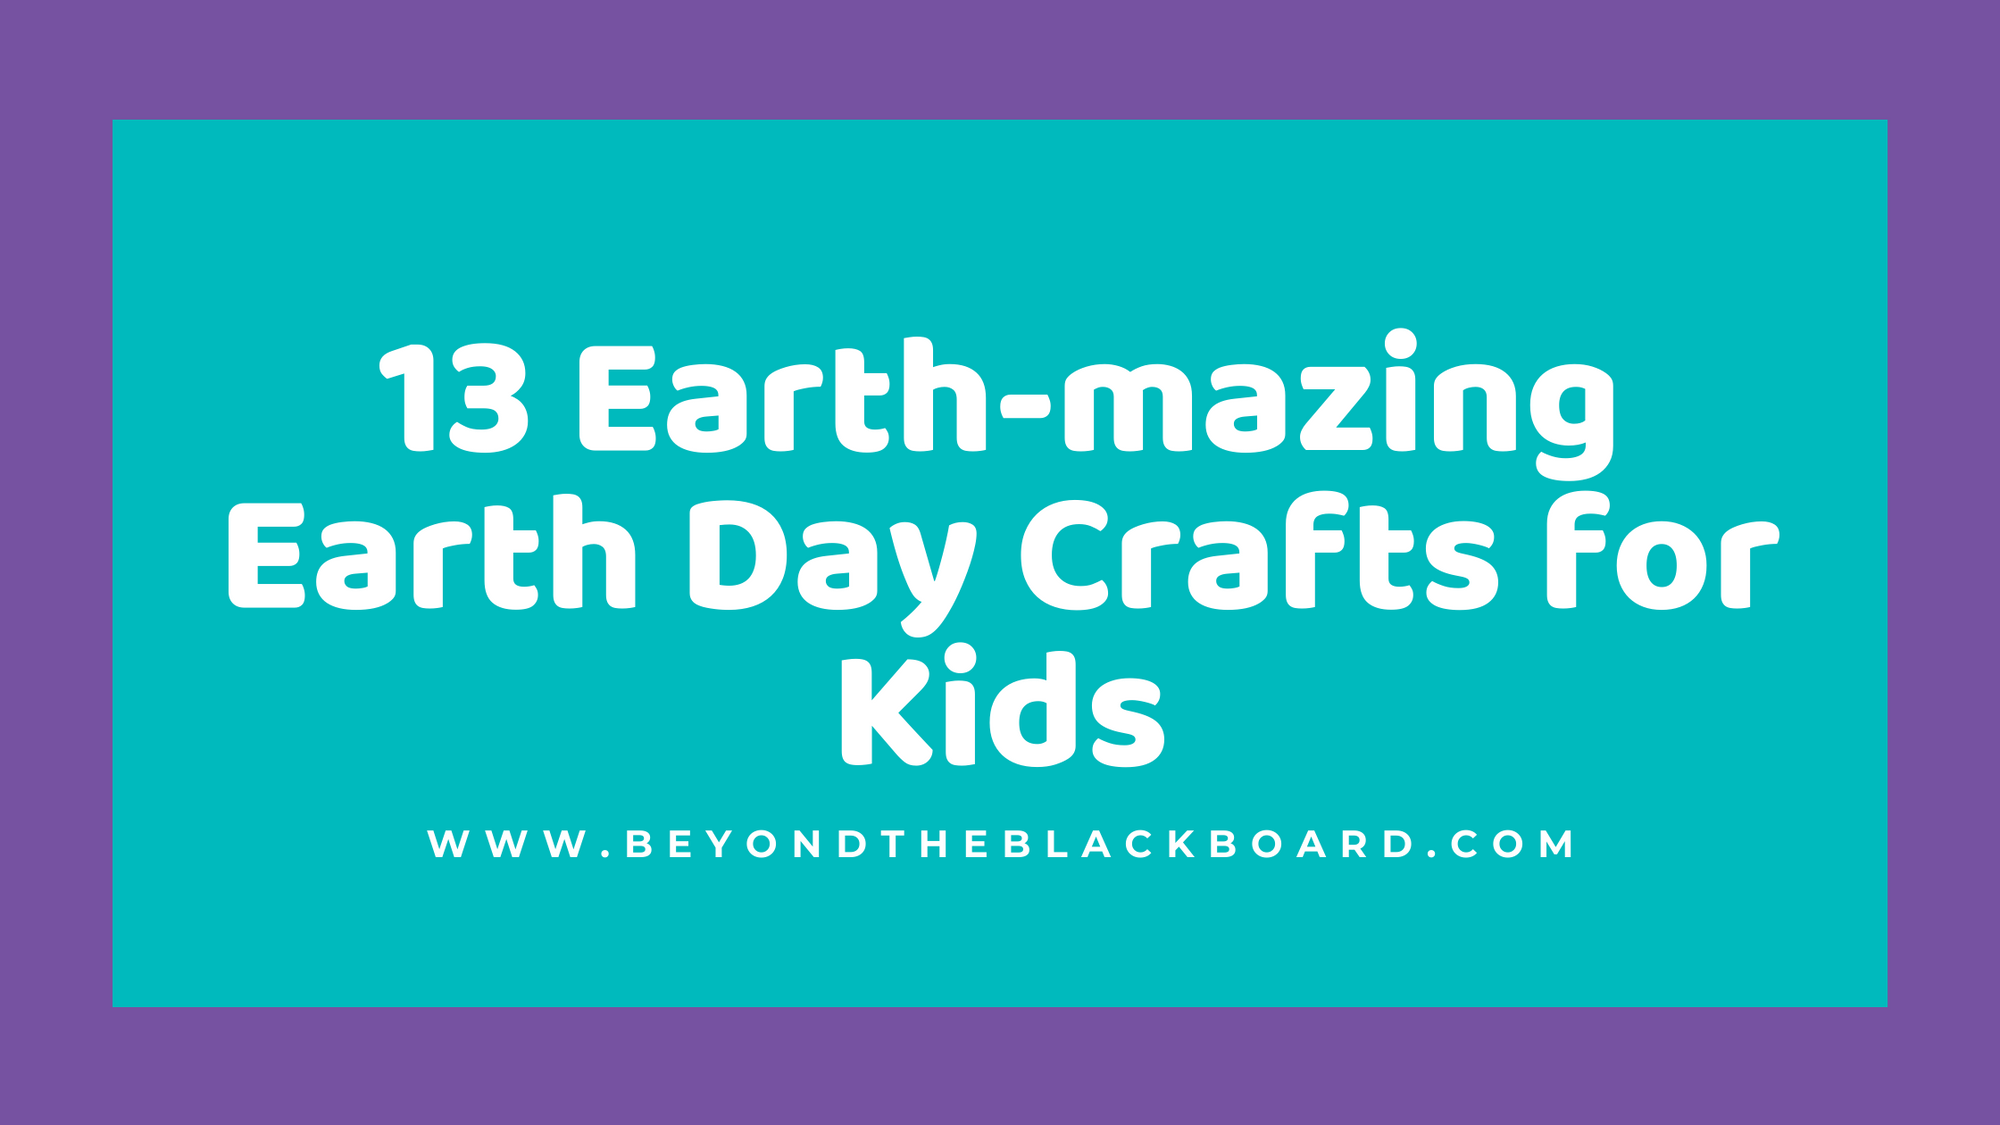 13 Earth-mazing Earth Day Crafts for Kids, www.beyondtheblackboard.com